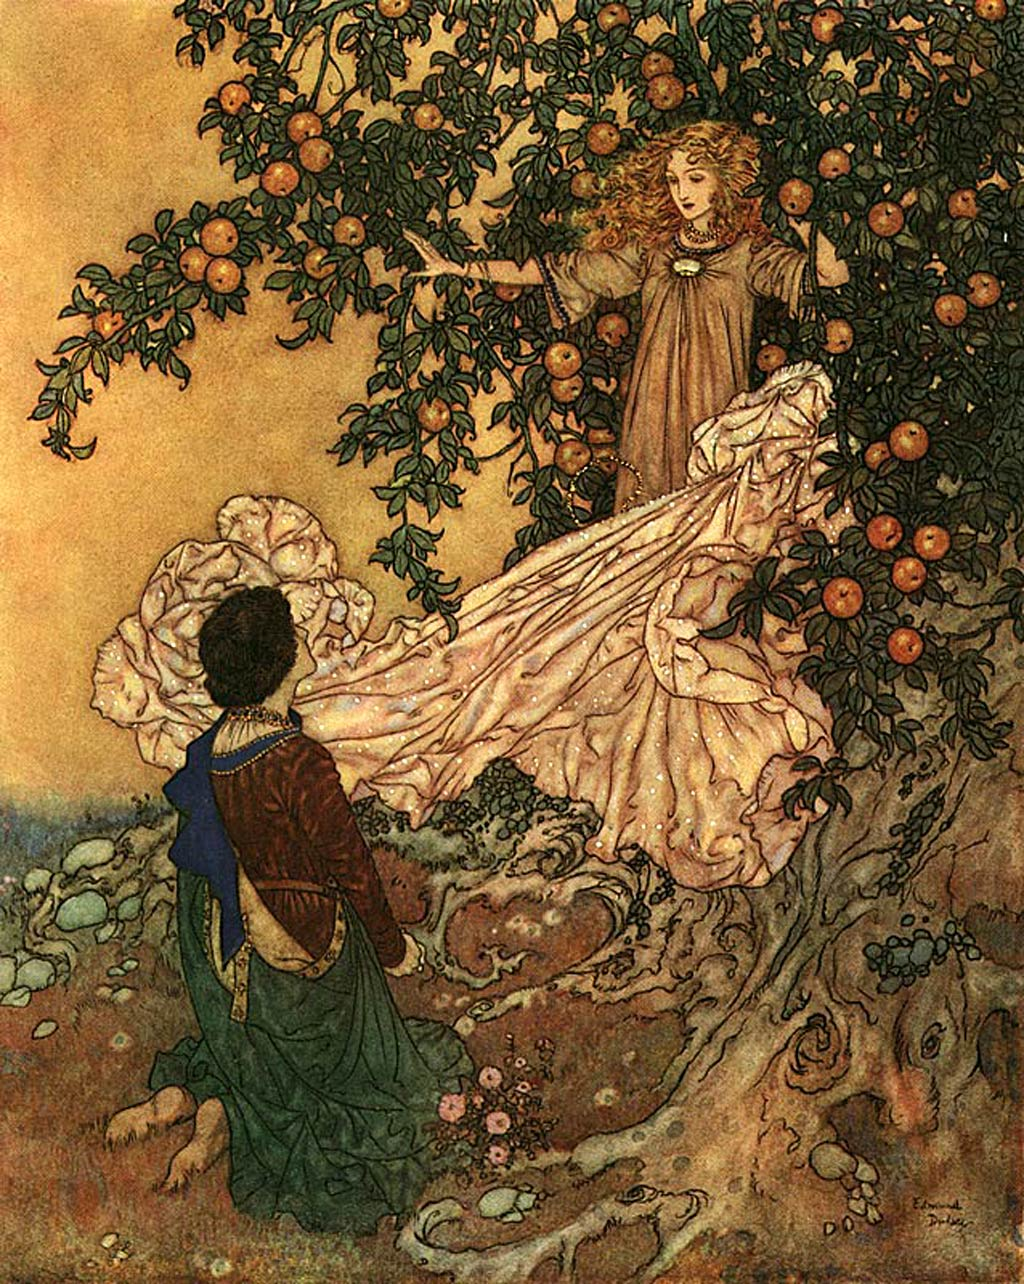 File:Edmund Dulac - The Garden of Paradise - Fairy of the Garden ...